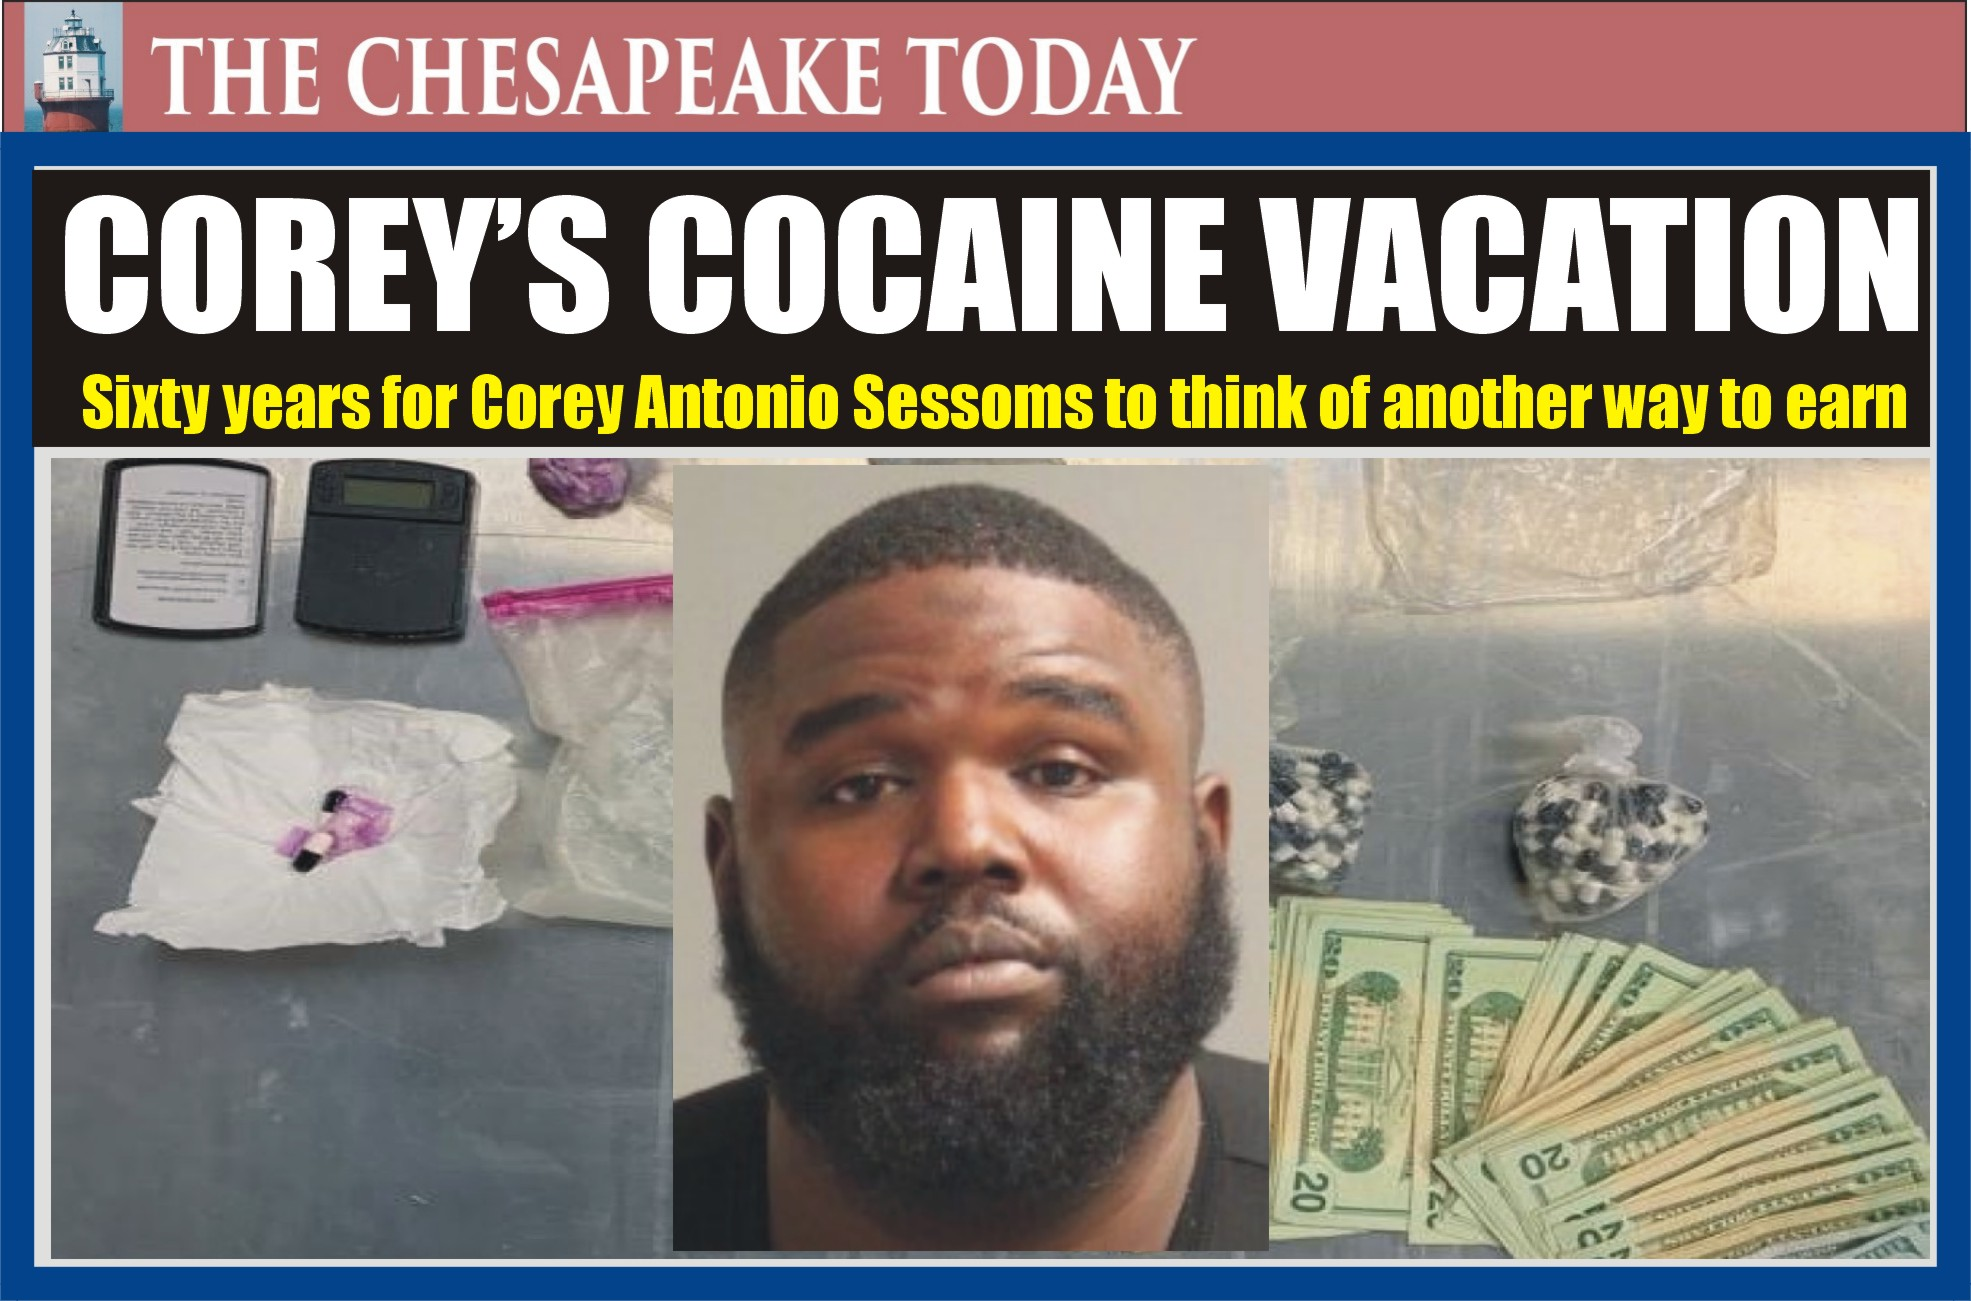 HEROIN HIGHWAY TO HELL: Fentanyl Stash in Secret Compartment Leads to 60 Years in Prison for Corey Sessoms